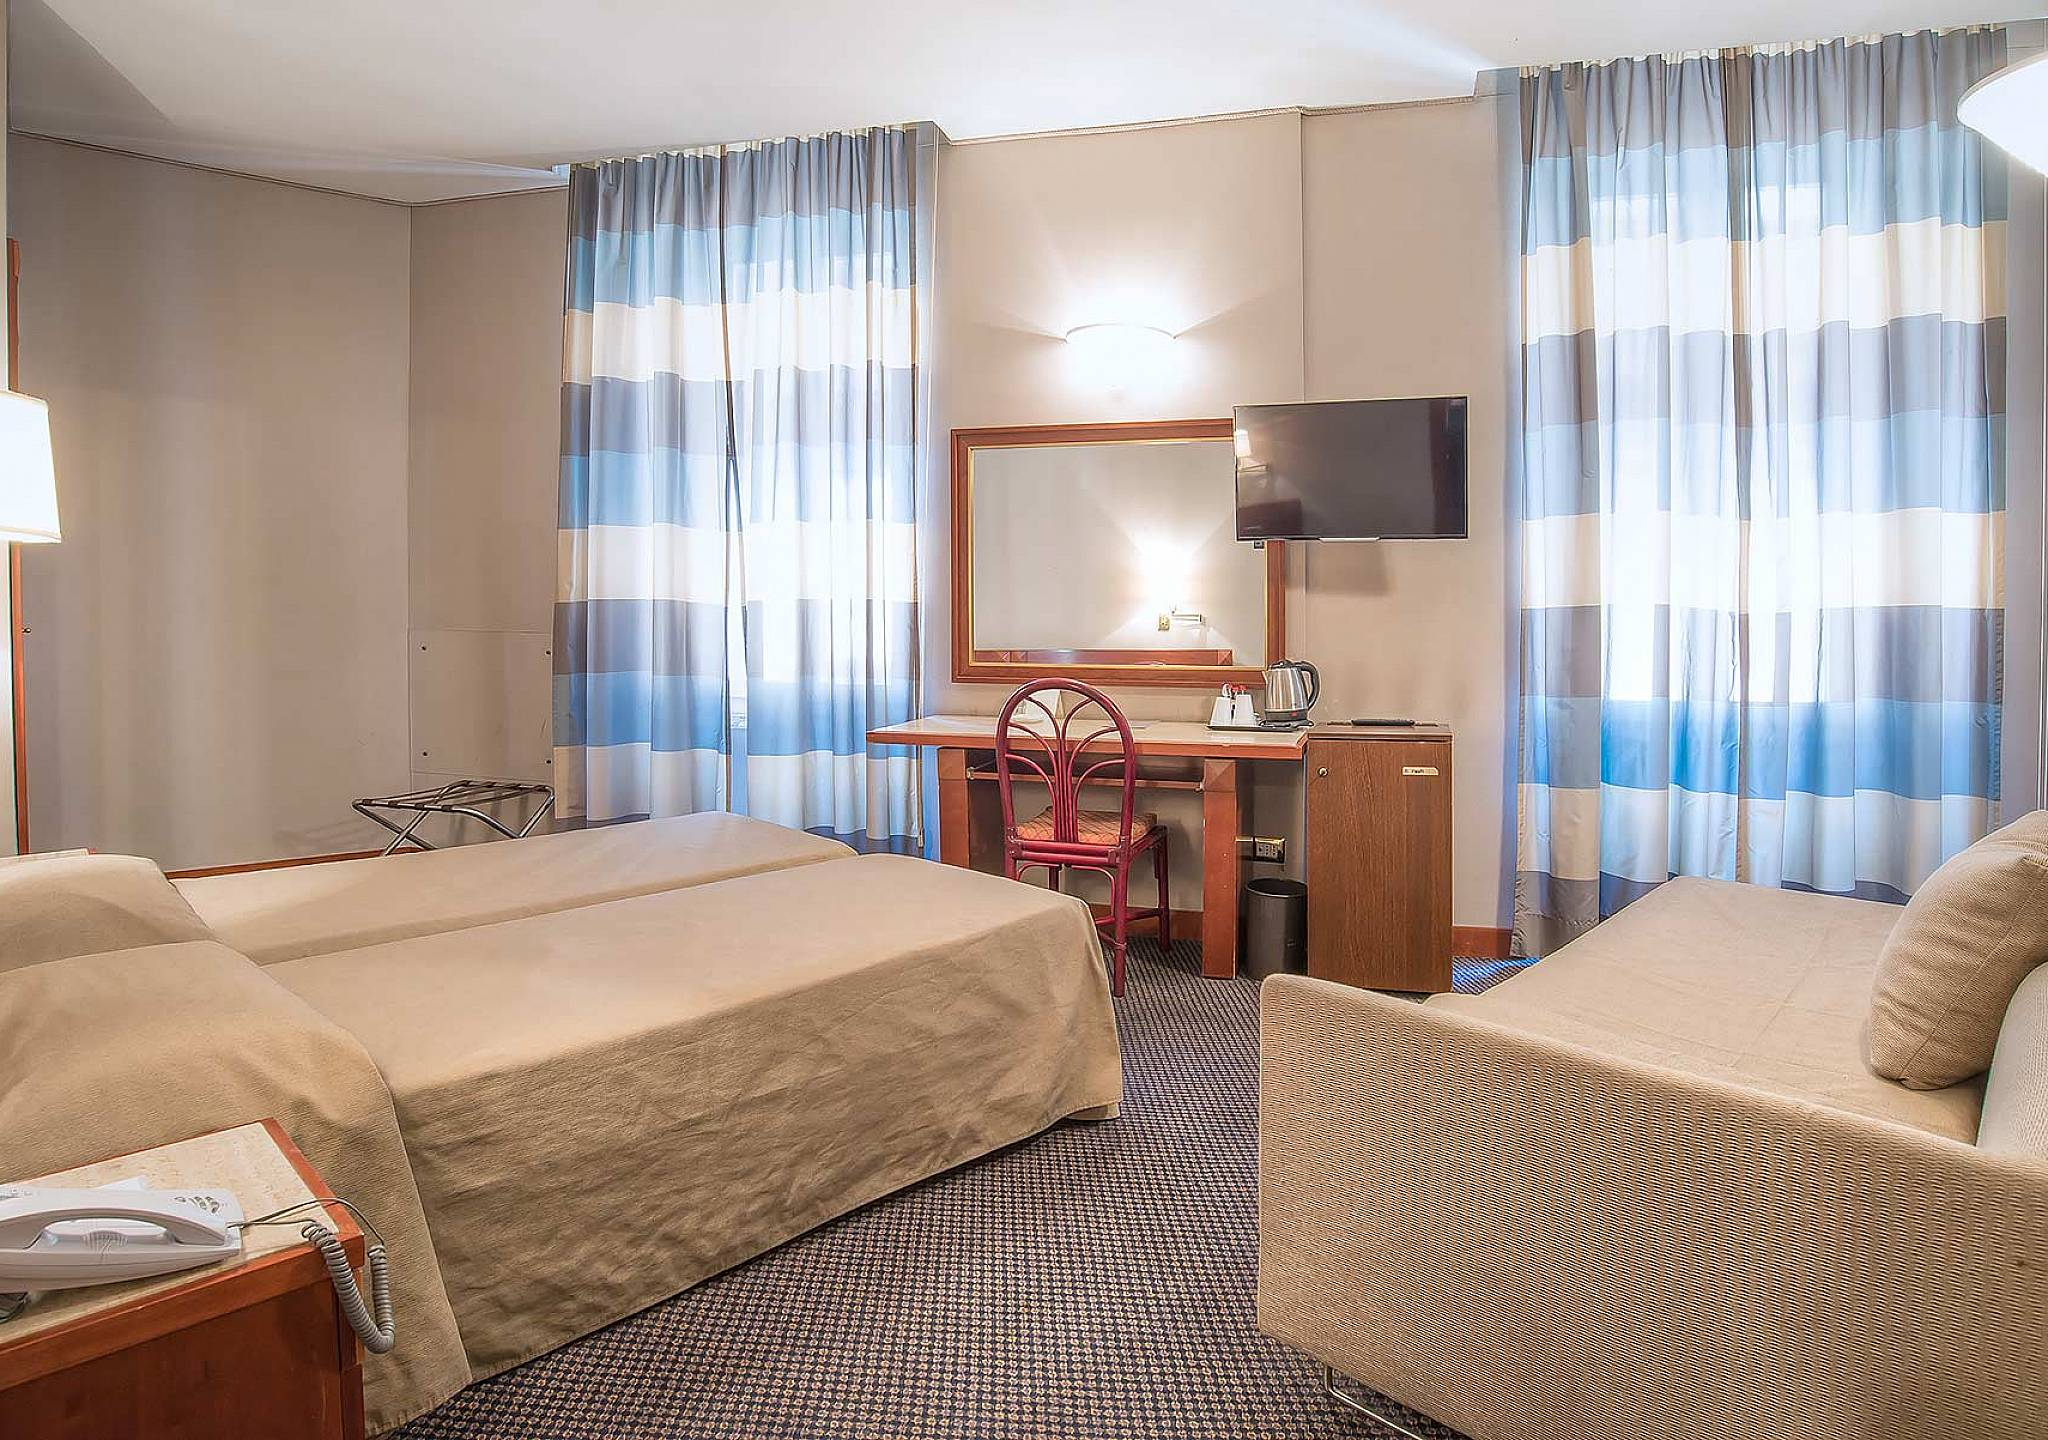 Privacy Curtain For Bedroom Hotel Accademia 3 Star Hotel Rome City Center Standard Room